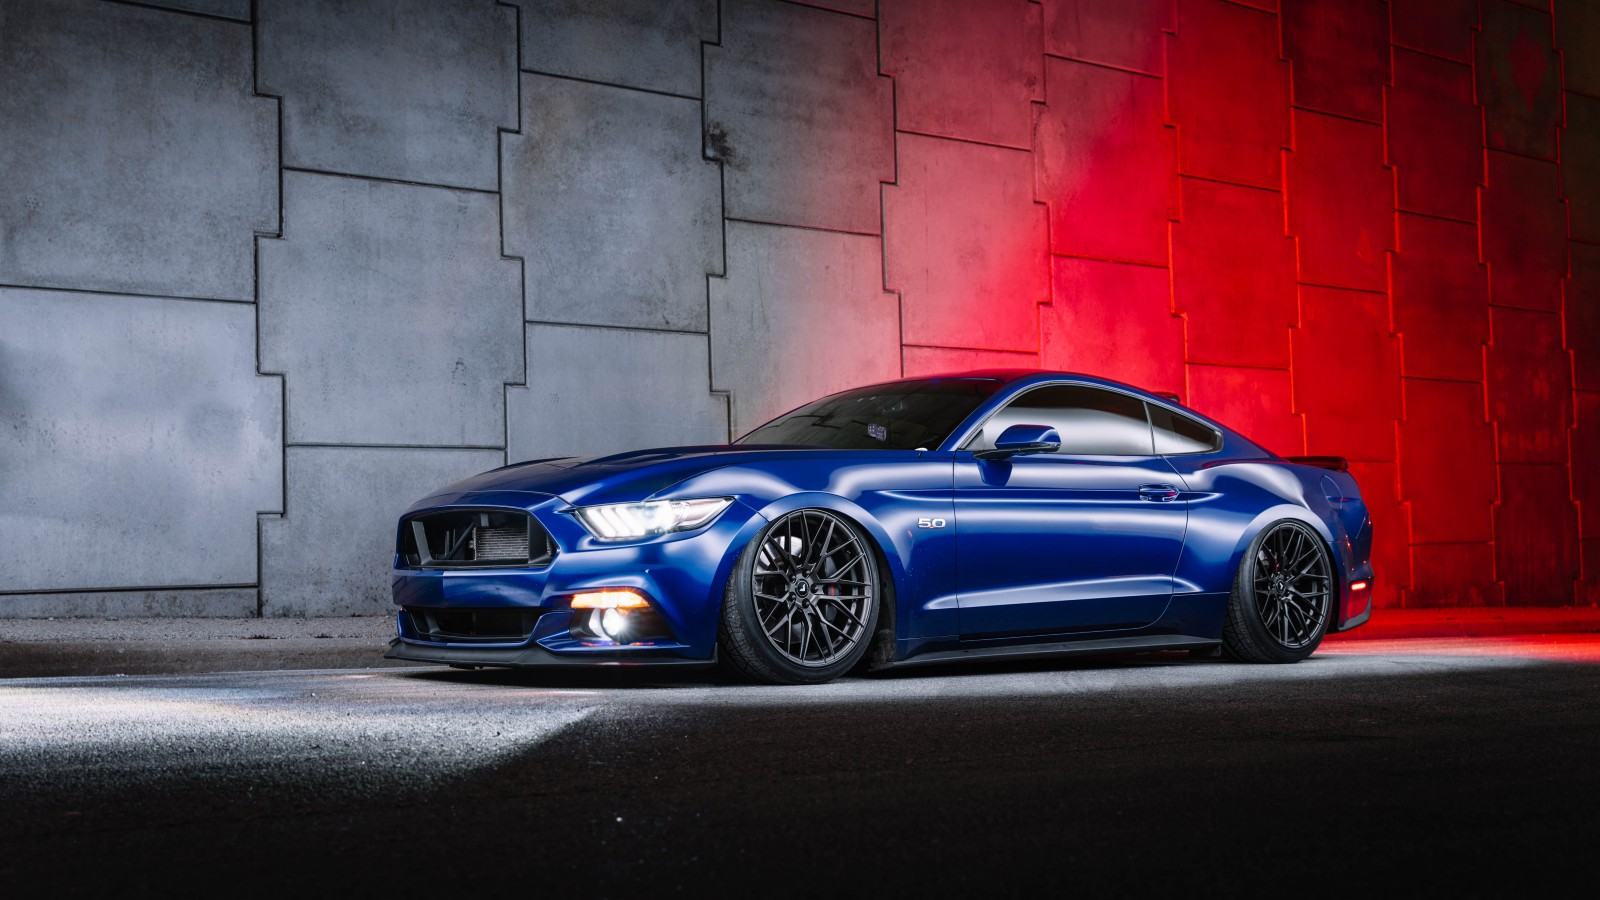 2018 Shelby Gt500 >> Ford Mustang GT Carbon Graphite 5K 2 Wallpaper | HD Car ...